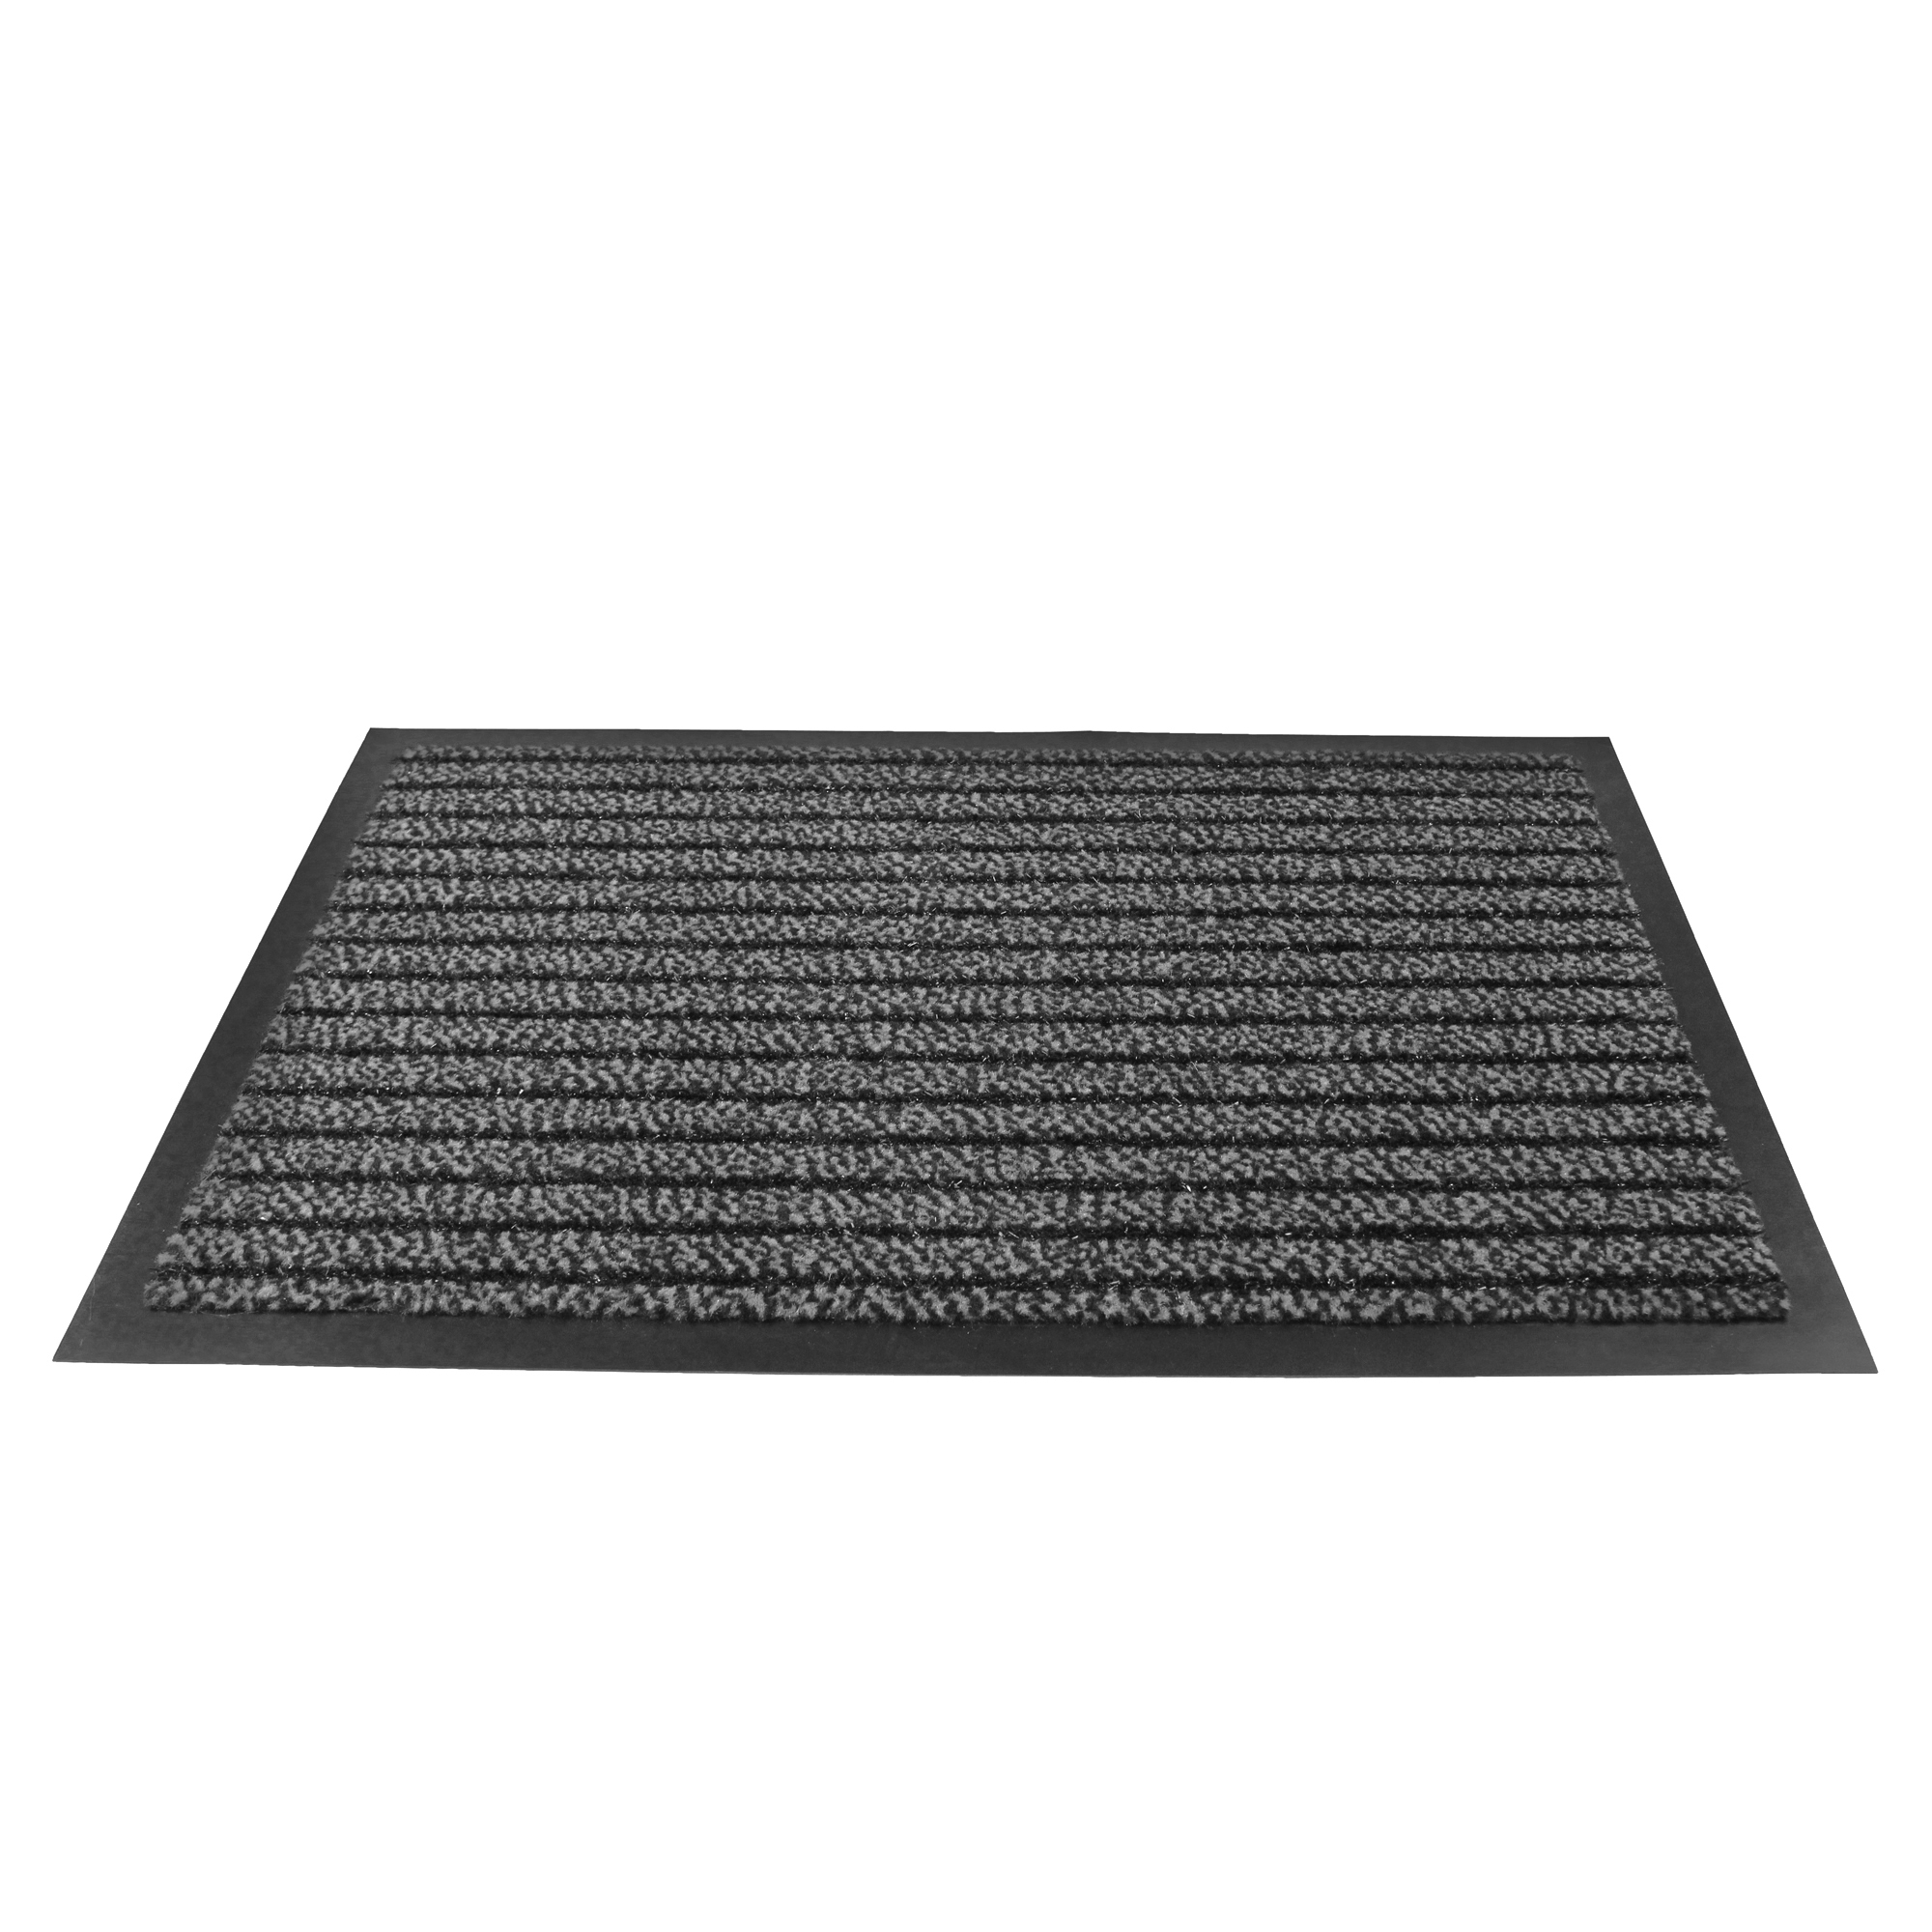 Door mats Doortex Ultimat Entrance Mat Indoor Use Nylon Monofilaments 1200x1800mm Grey Ref FC4120180ULTGR